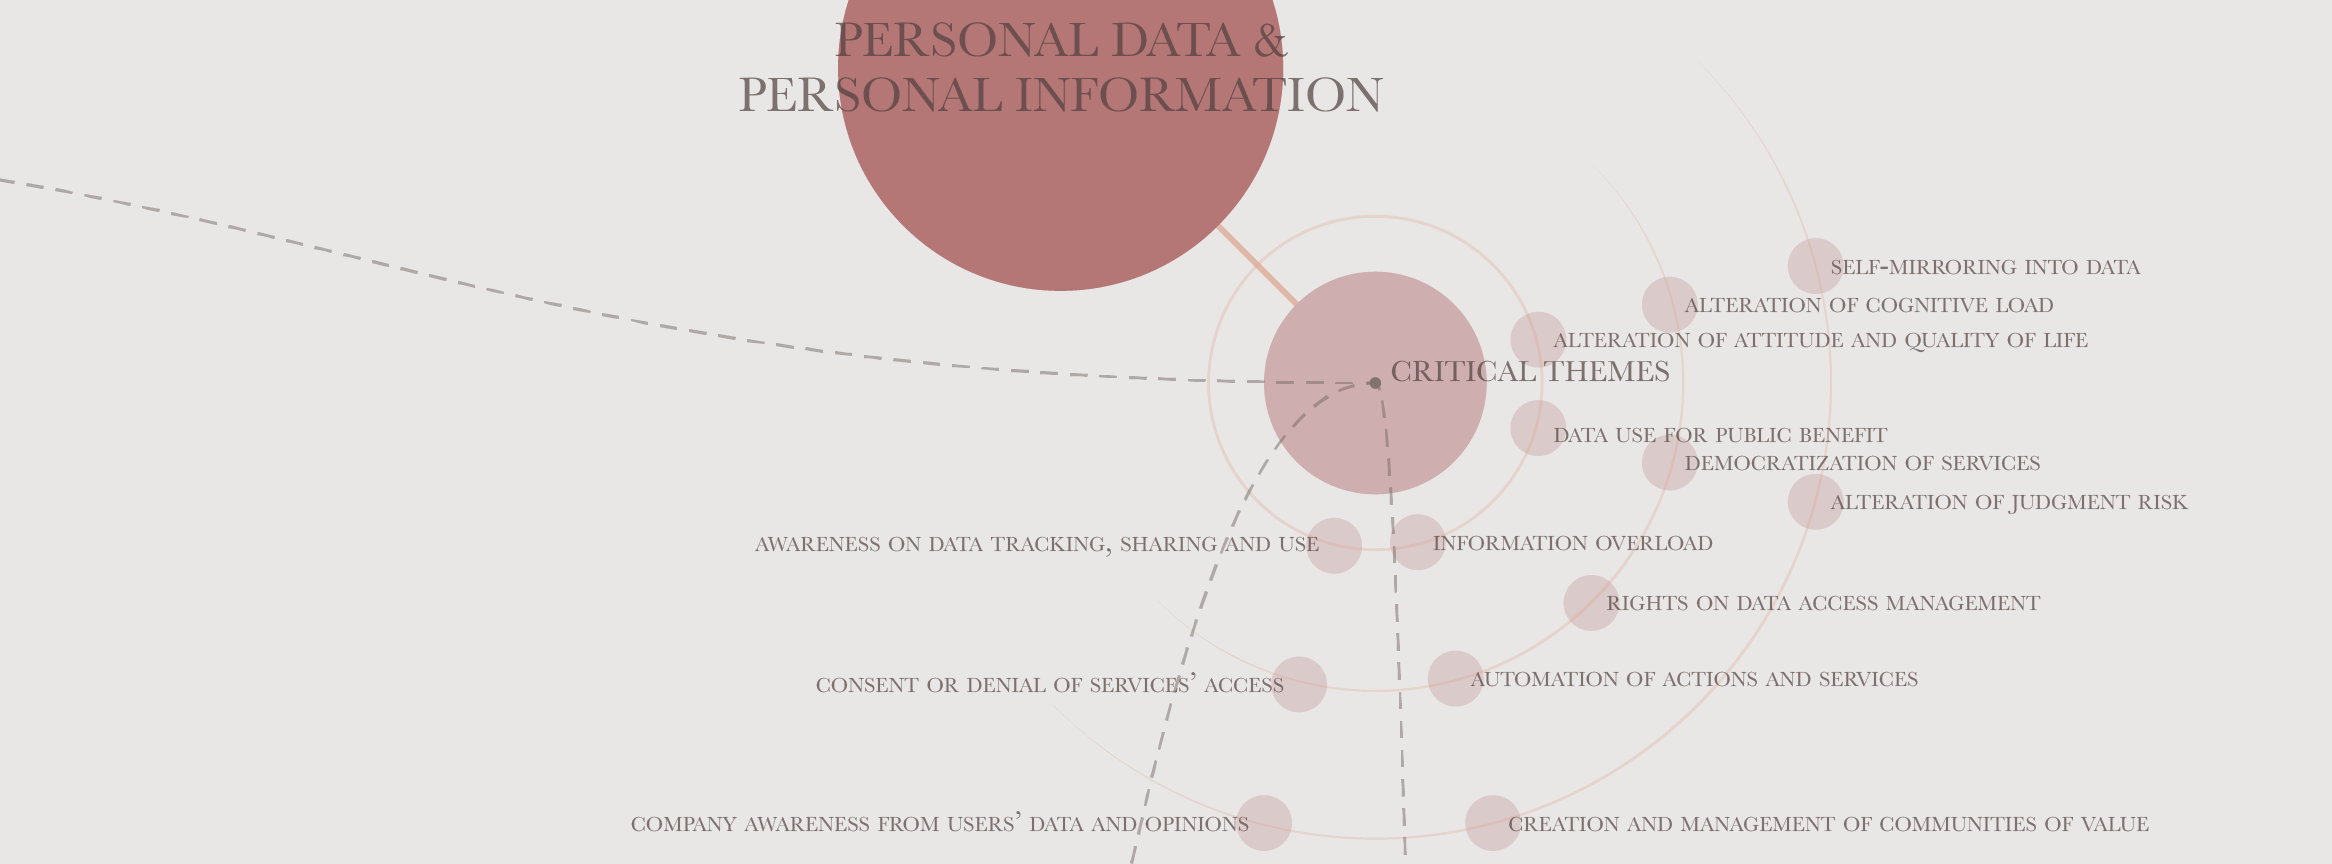 12 Critical Themes on the Use of Personal Information